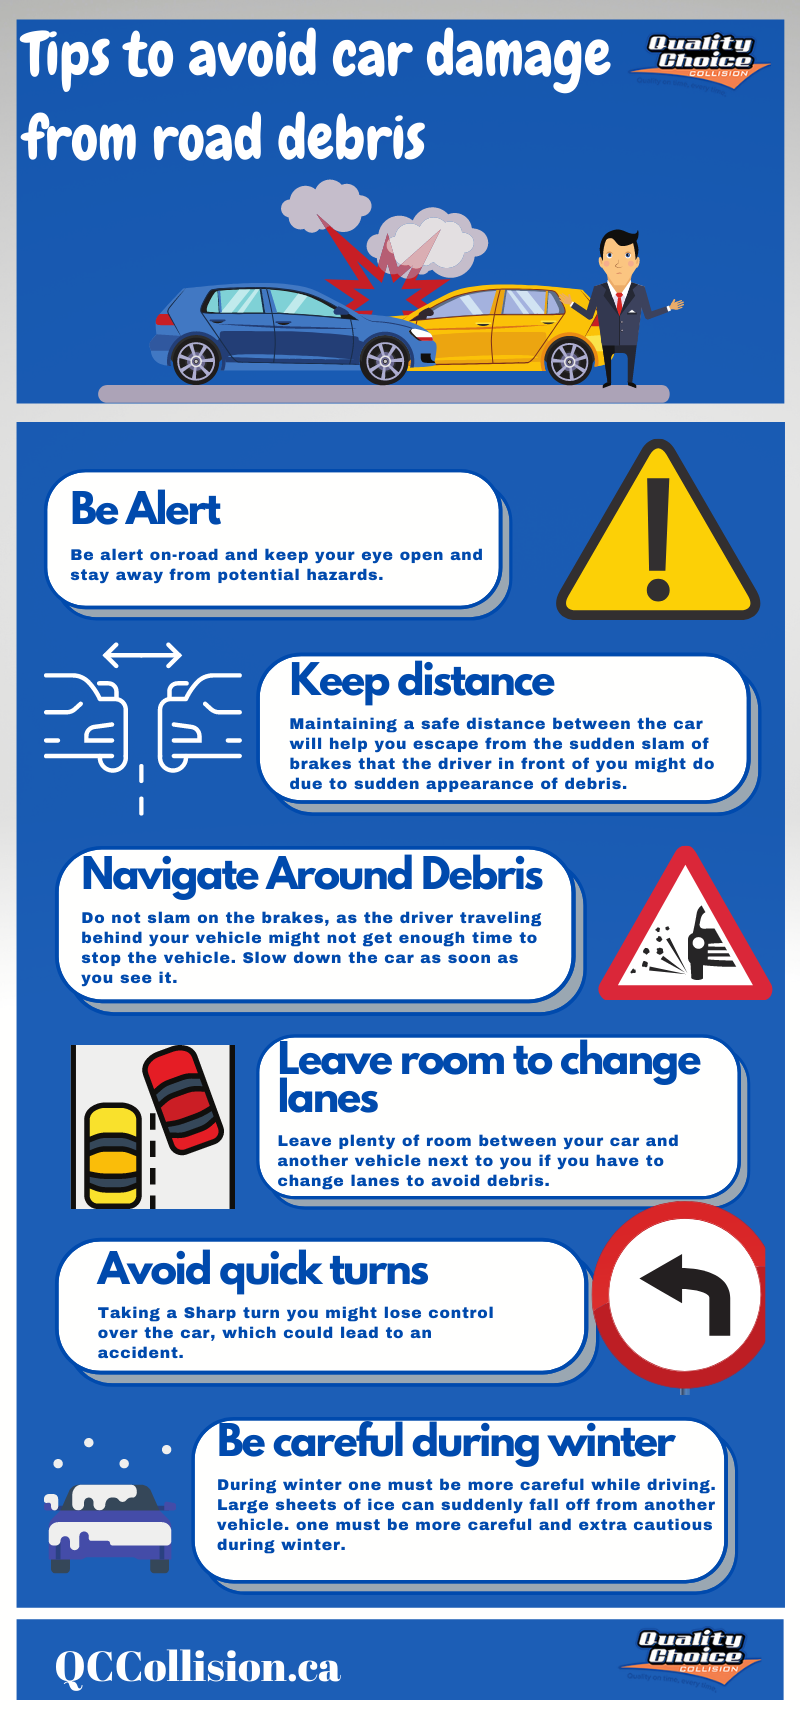 Tips to avoid car damage from road debris